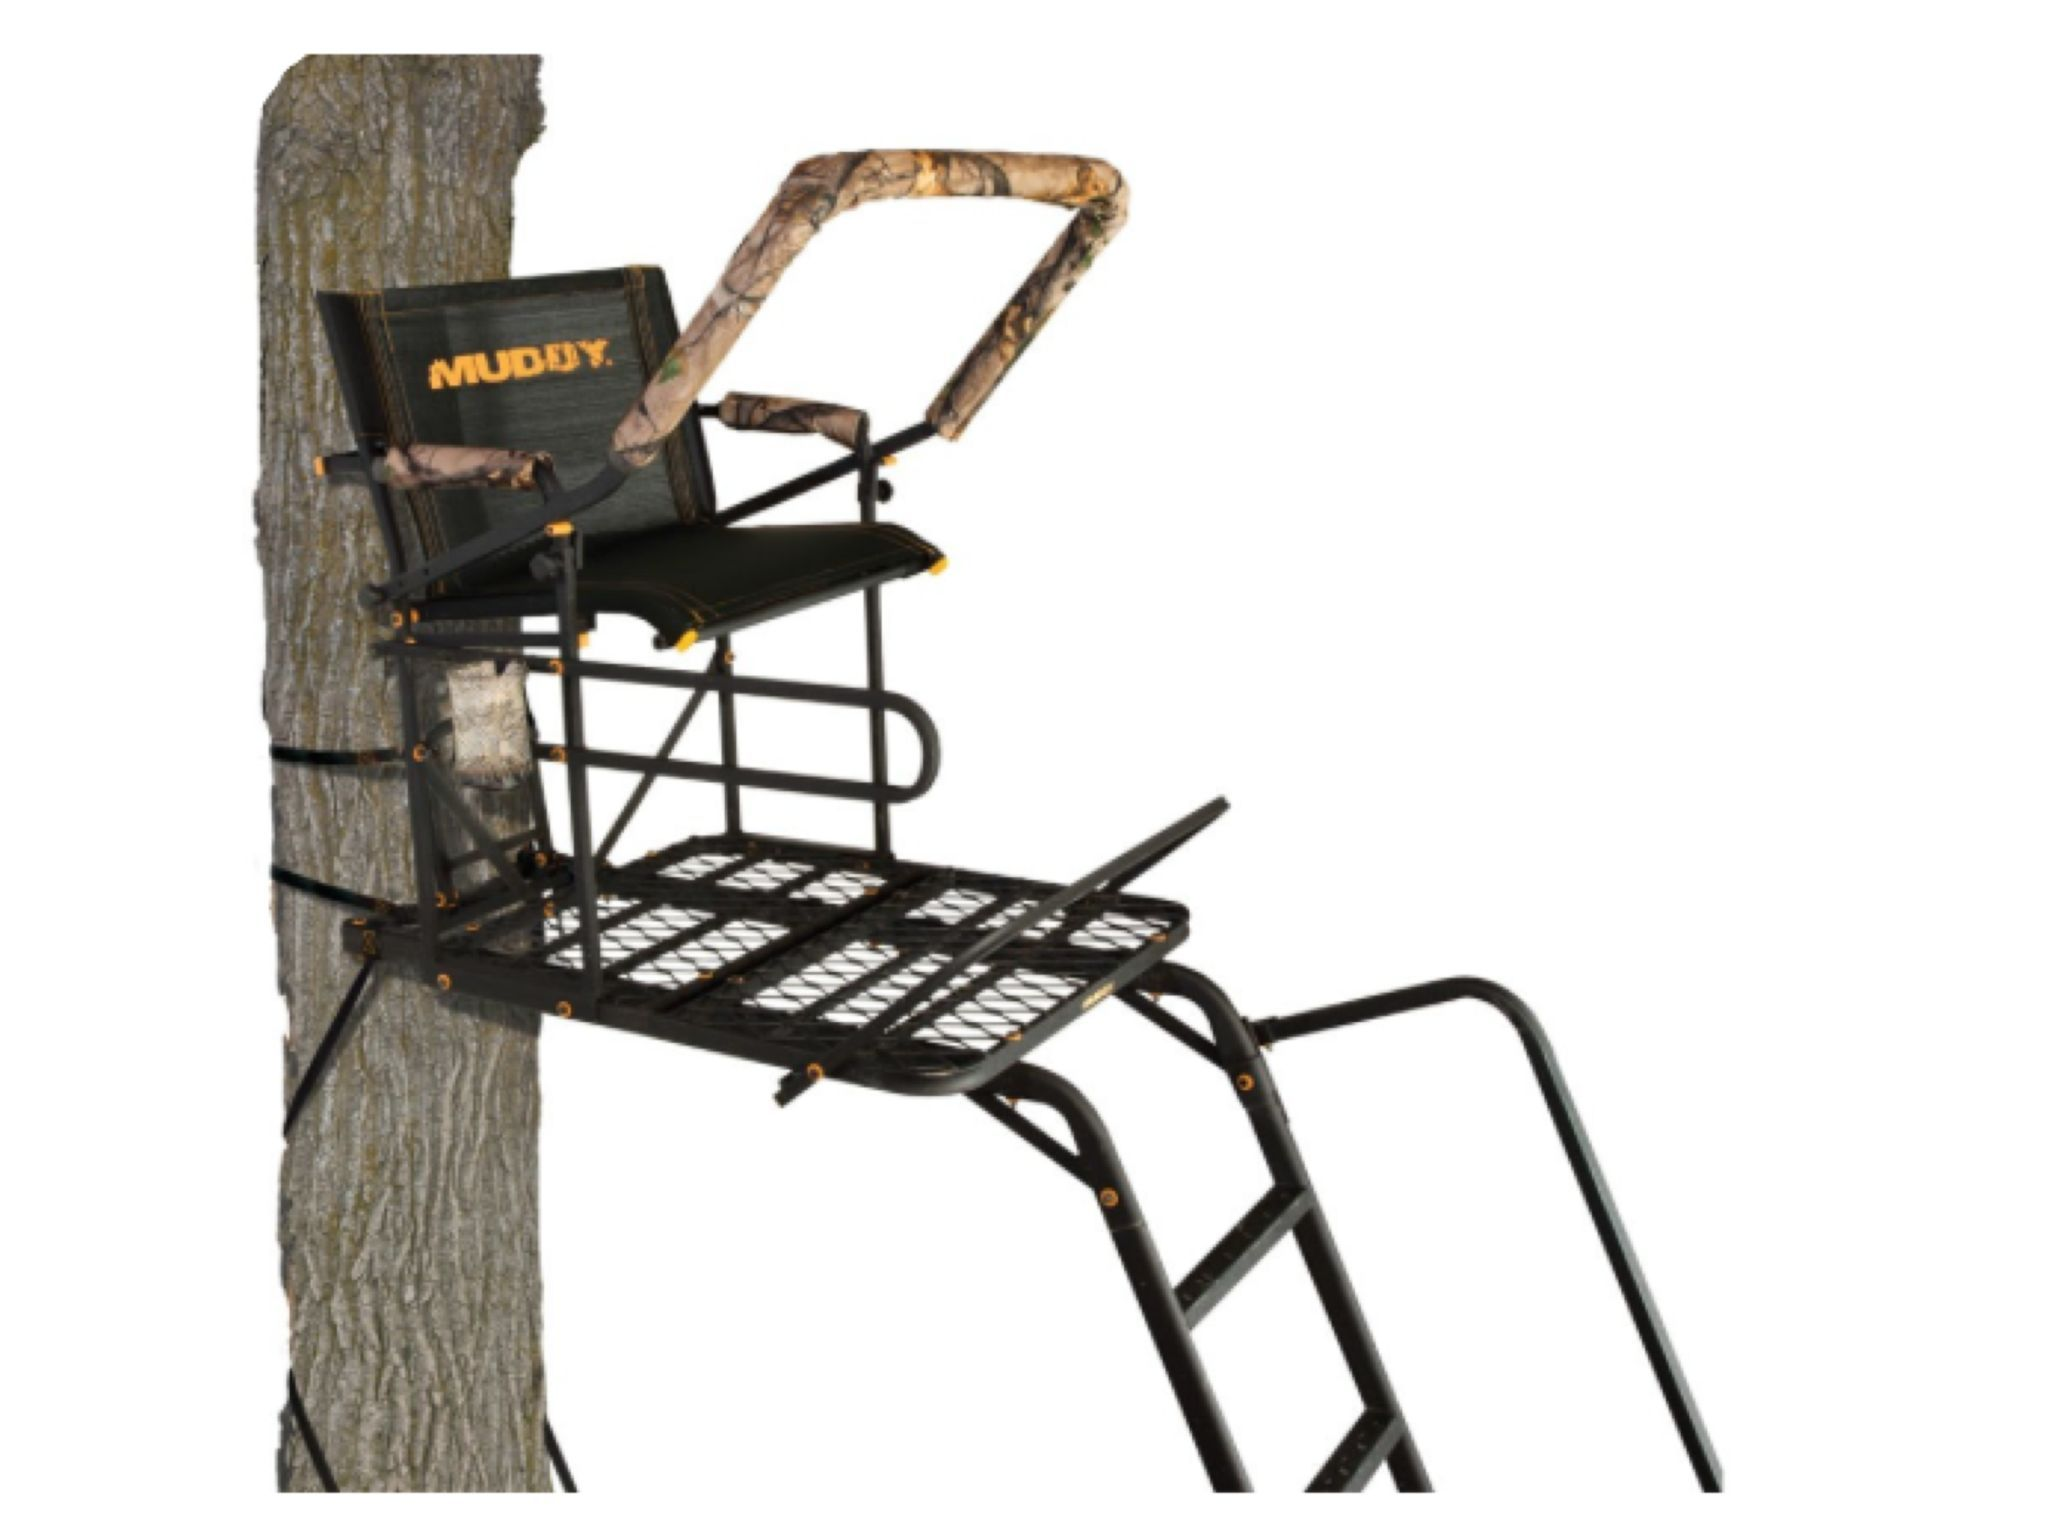 Pin by shannon edwards on Tree Stand/ Ideas Ladder